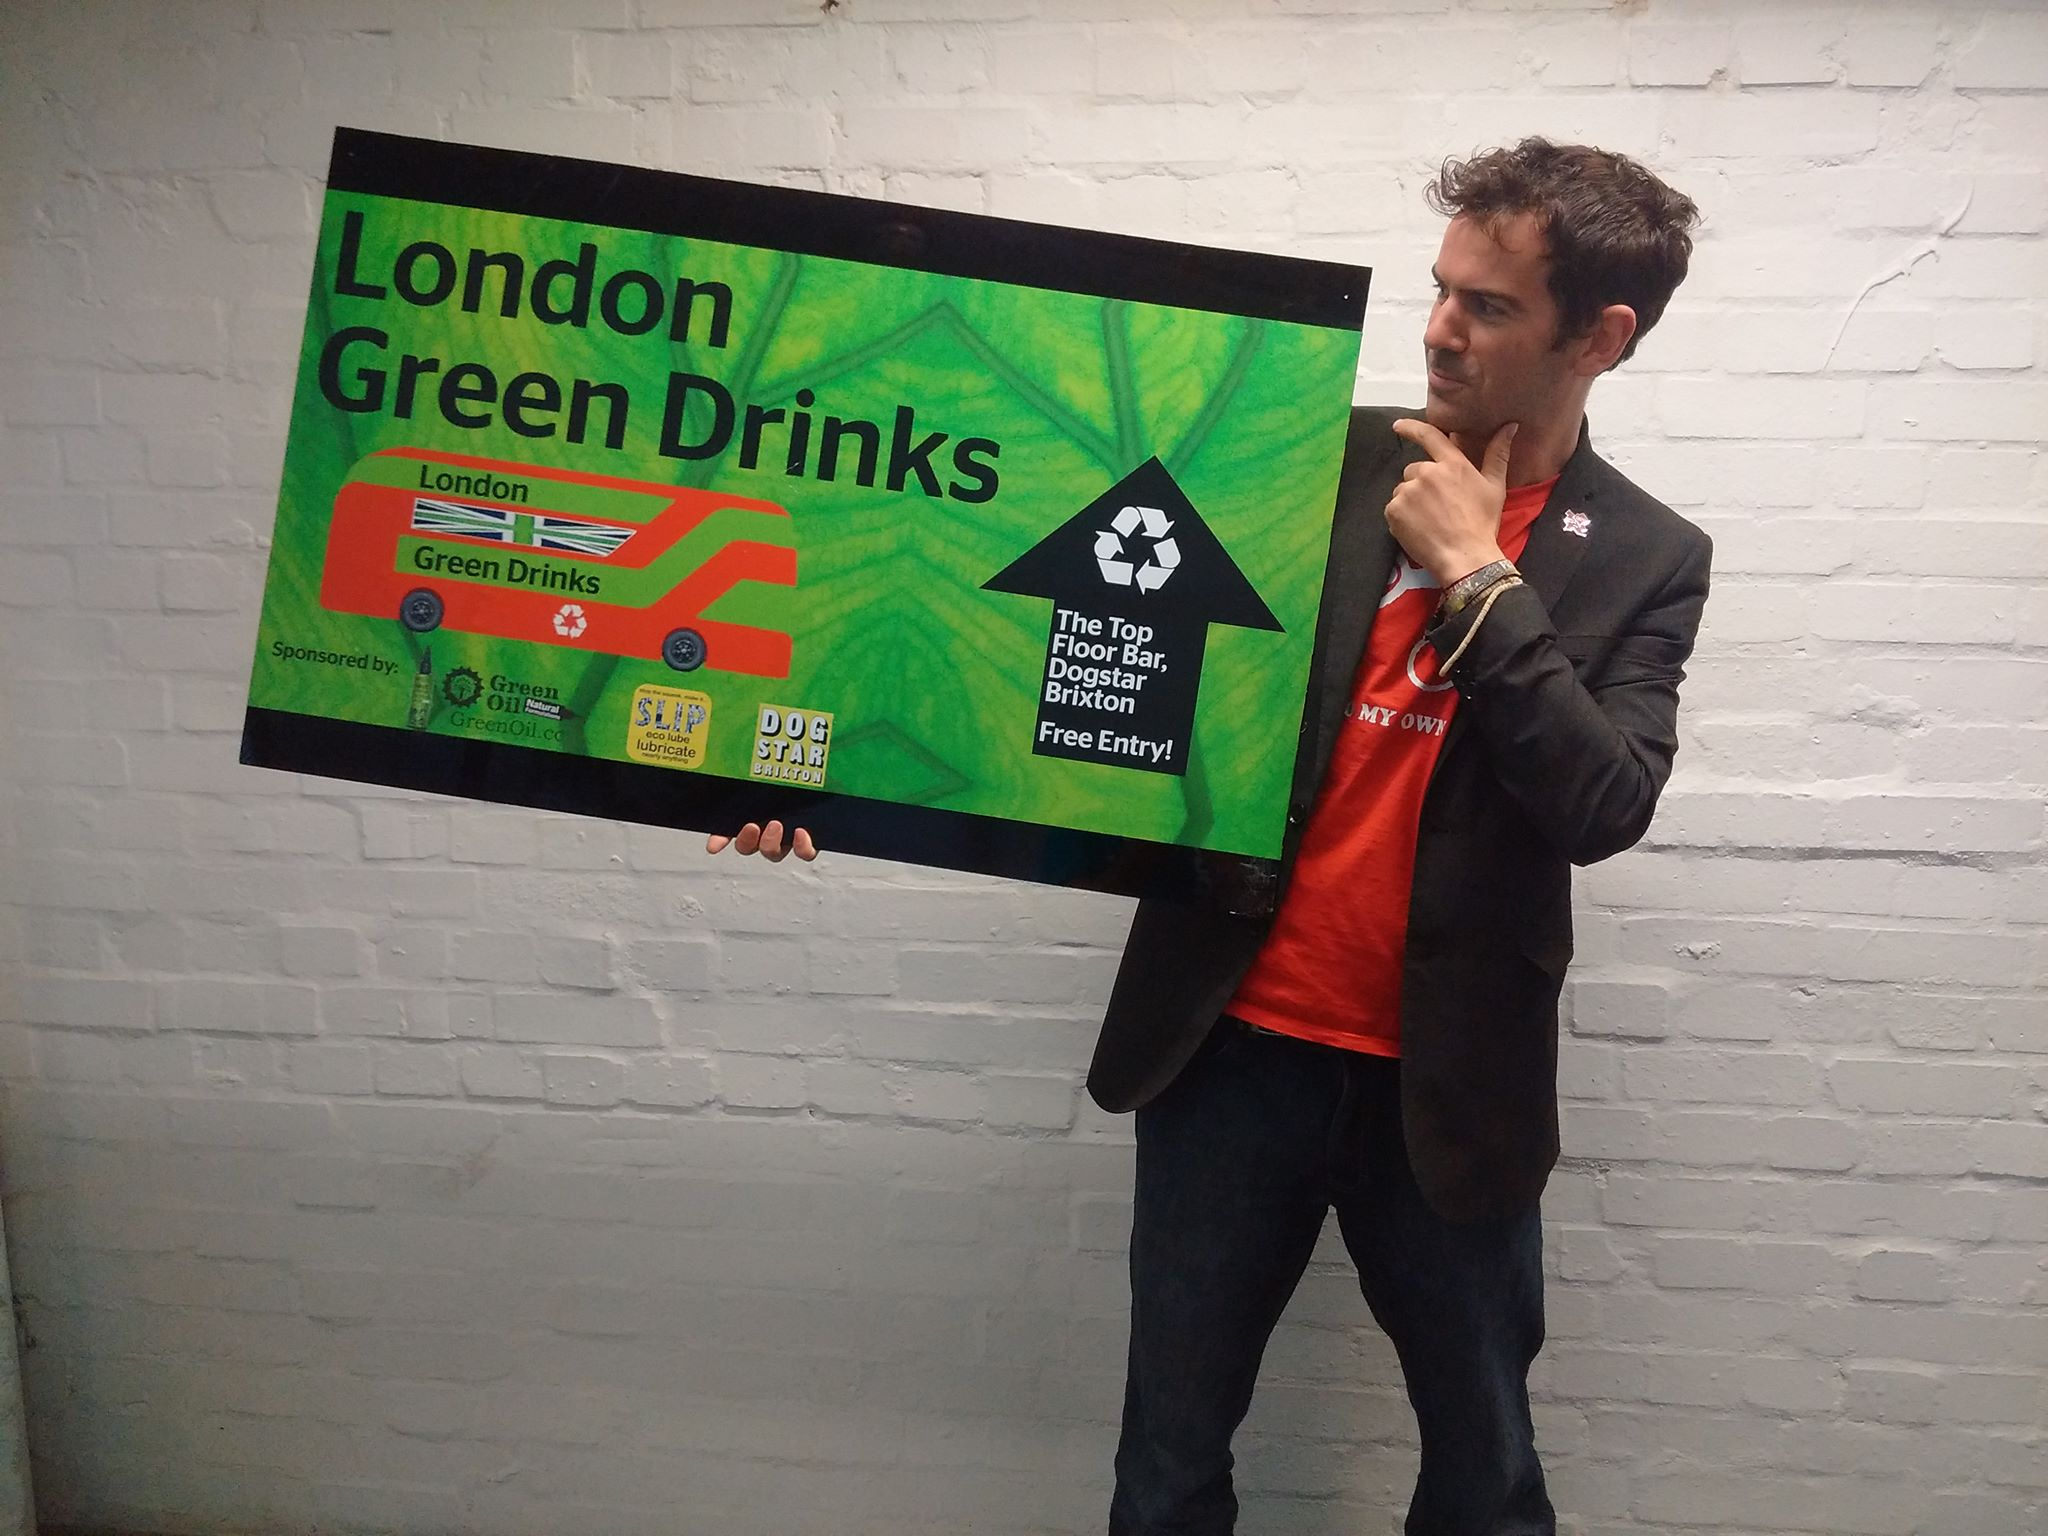 Simon Nash holding a the London Green Drinks sign